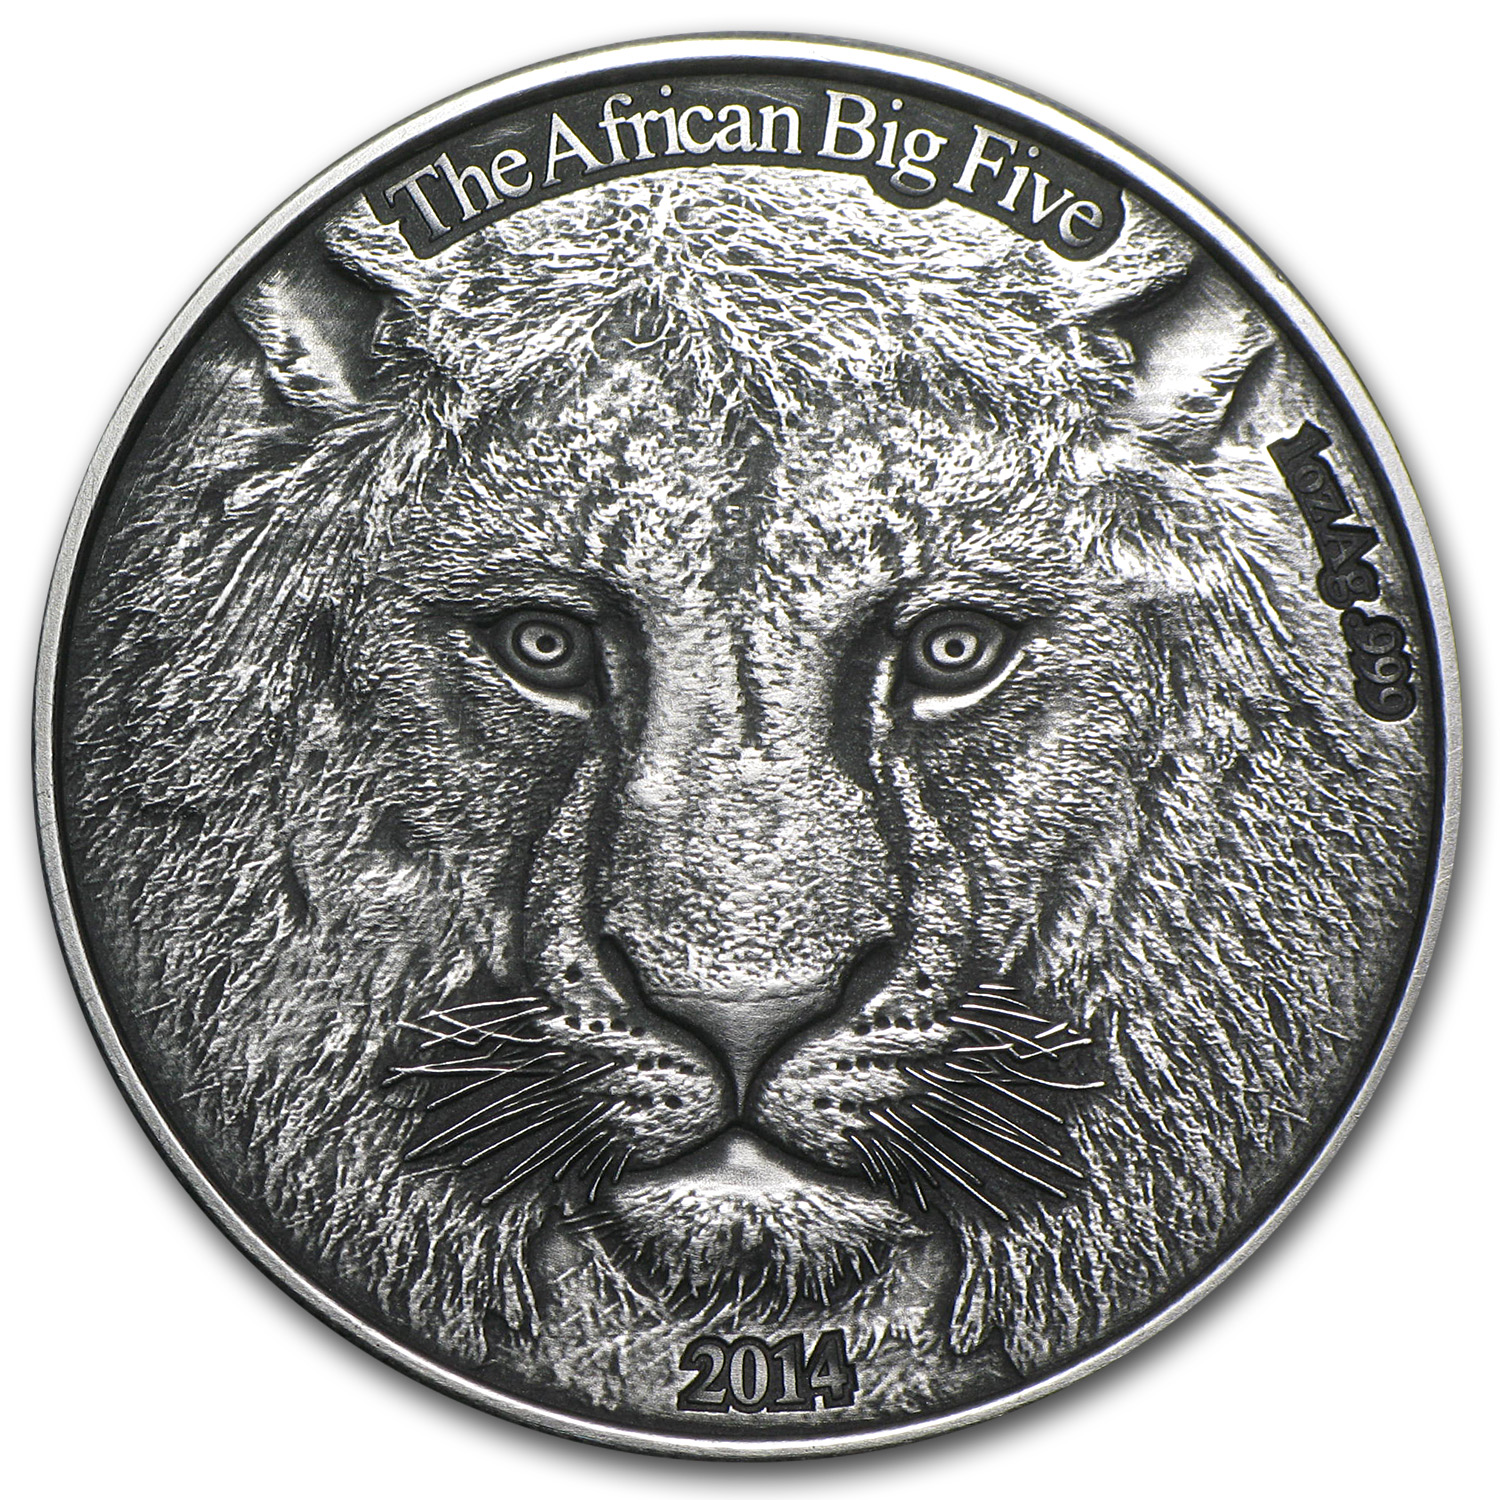 2014 Burkina Faso 1 oz Silver African Big Five The Lion